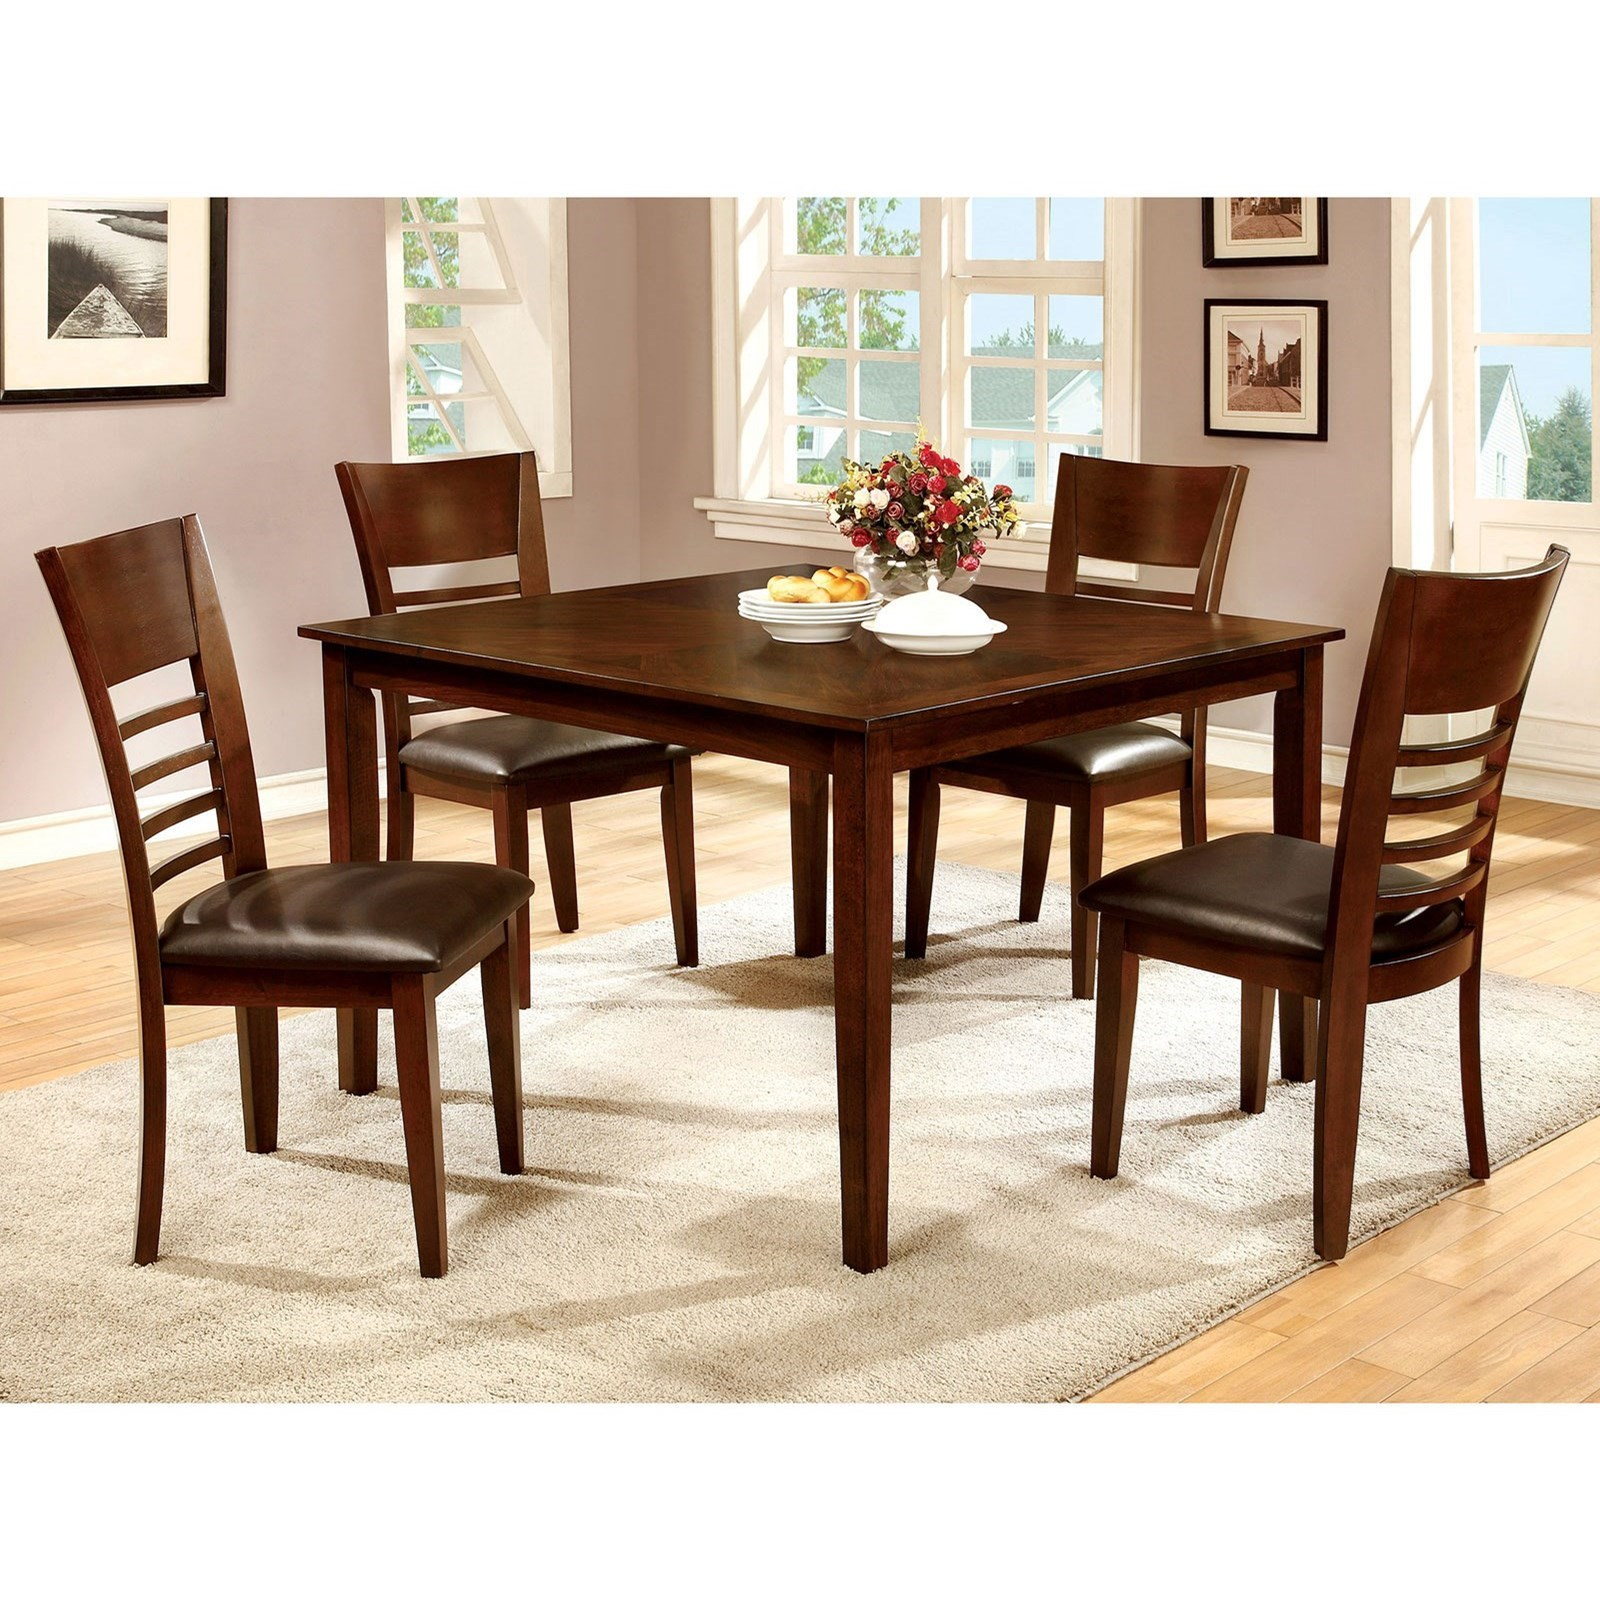 Hillsview Five Piece Dining Set at Household Furniture